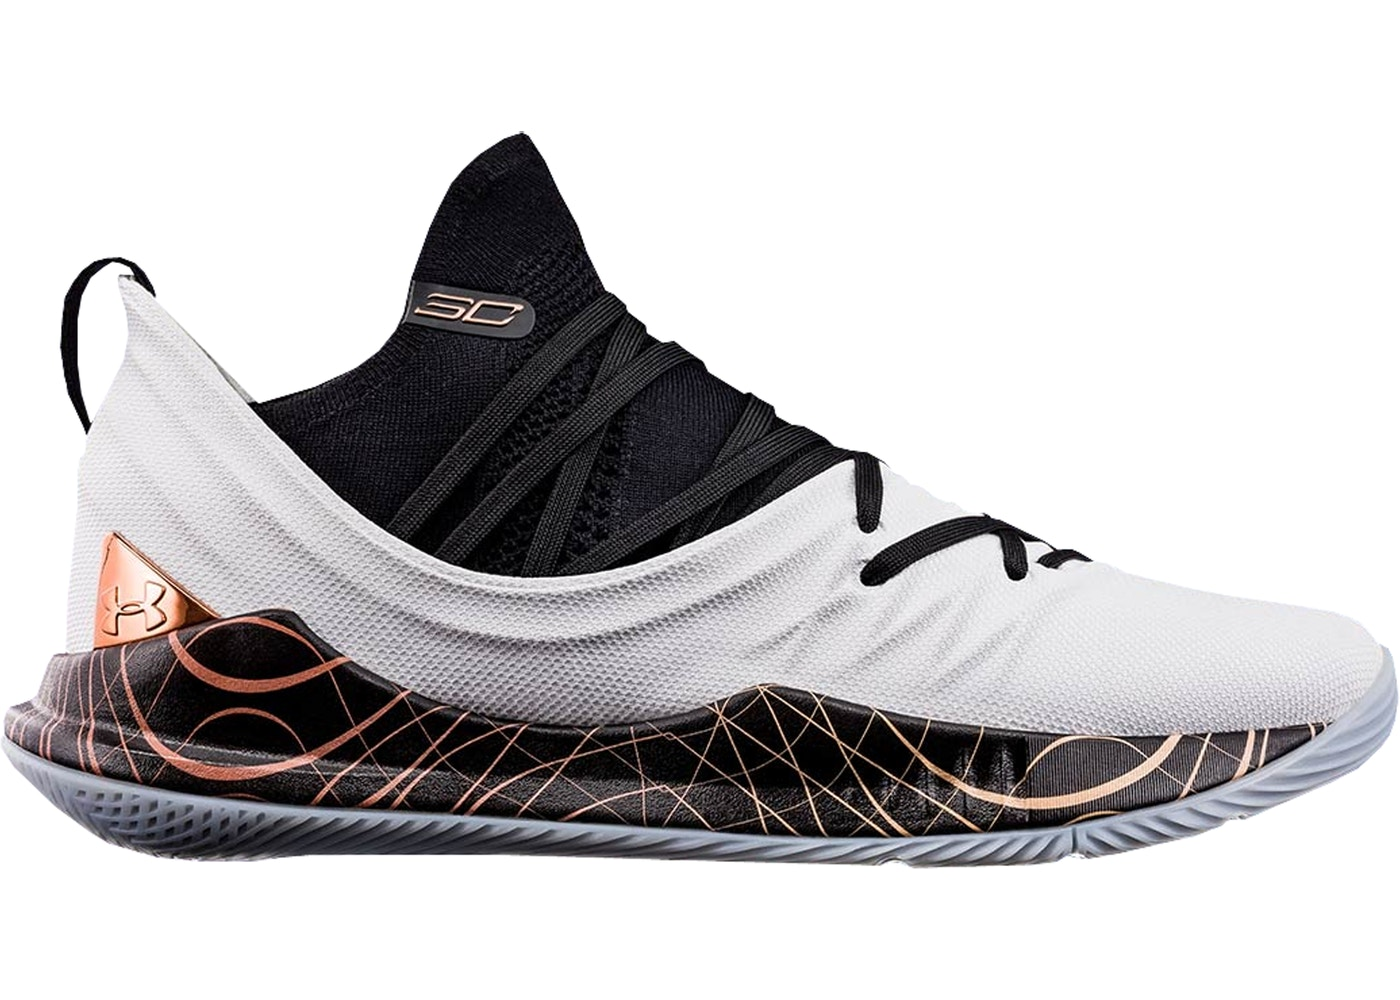 Under Armour Curry 5 Under Armour Curry 5 Copper - 3021708-101